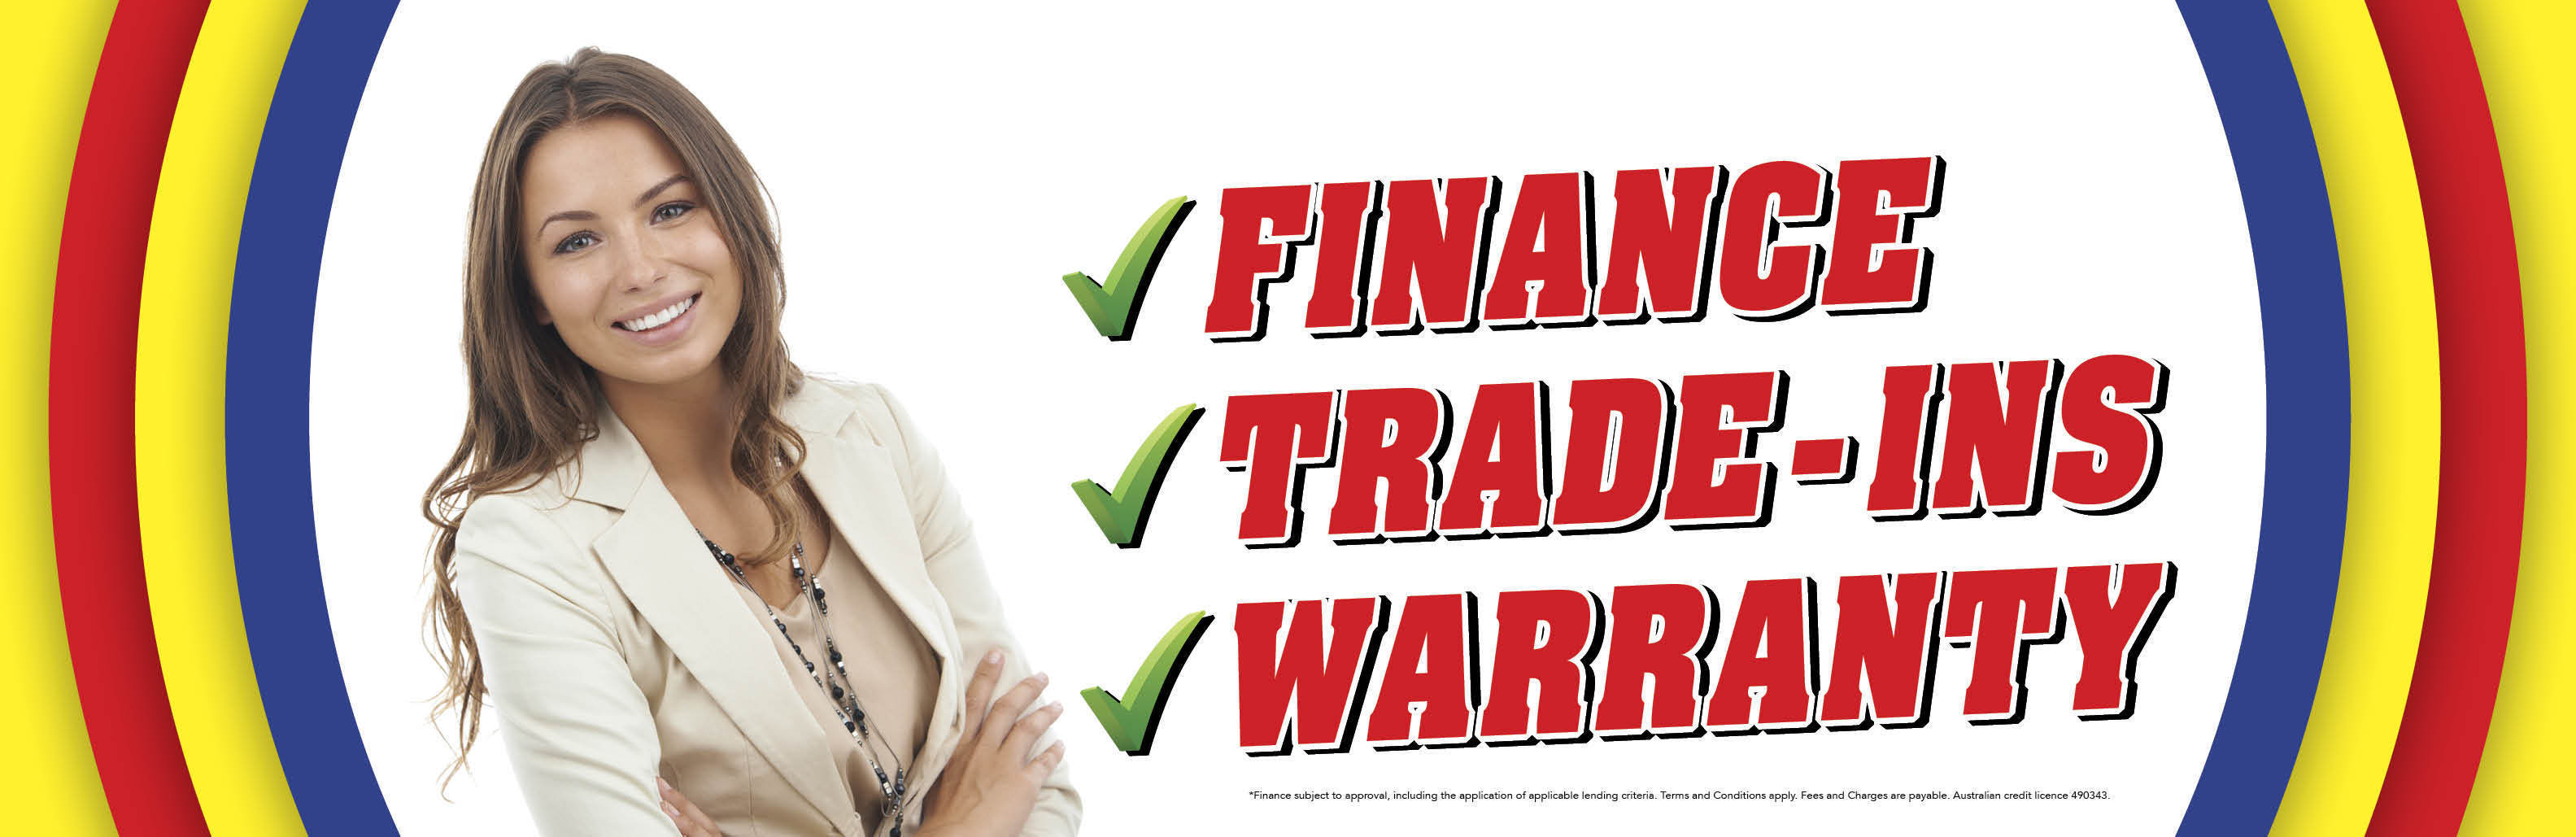 YES WE DO FINANCE, TRADE INS & WARRANTIES! Compare us before you Sign!